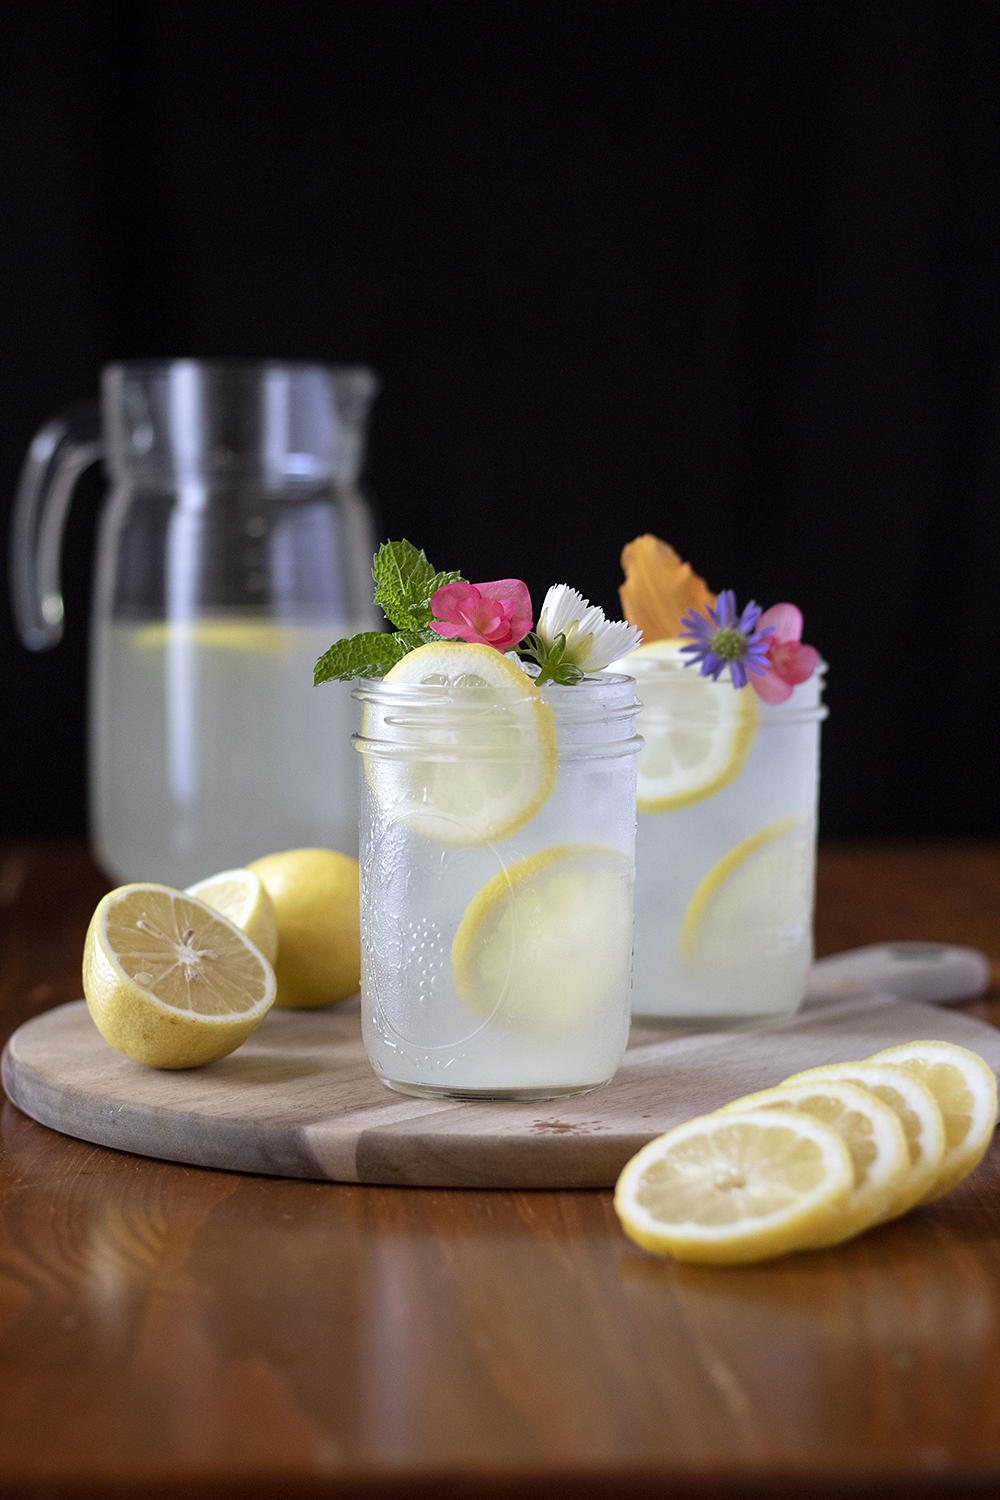 The best lemonade recipe ever. seriously. Lemonade with oleo saccharum